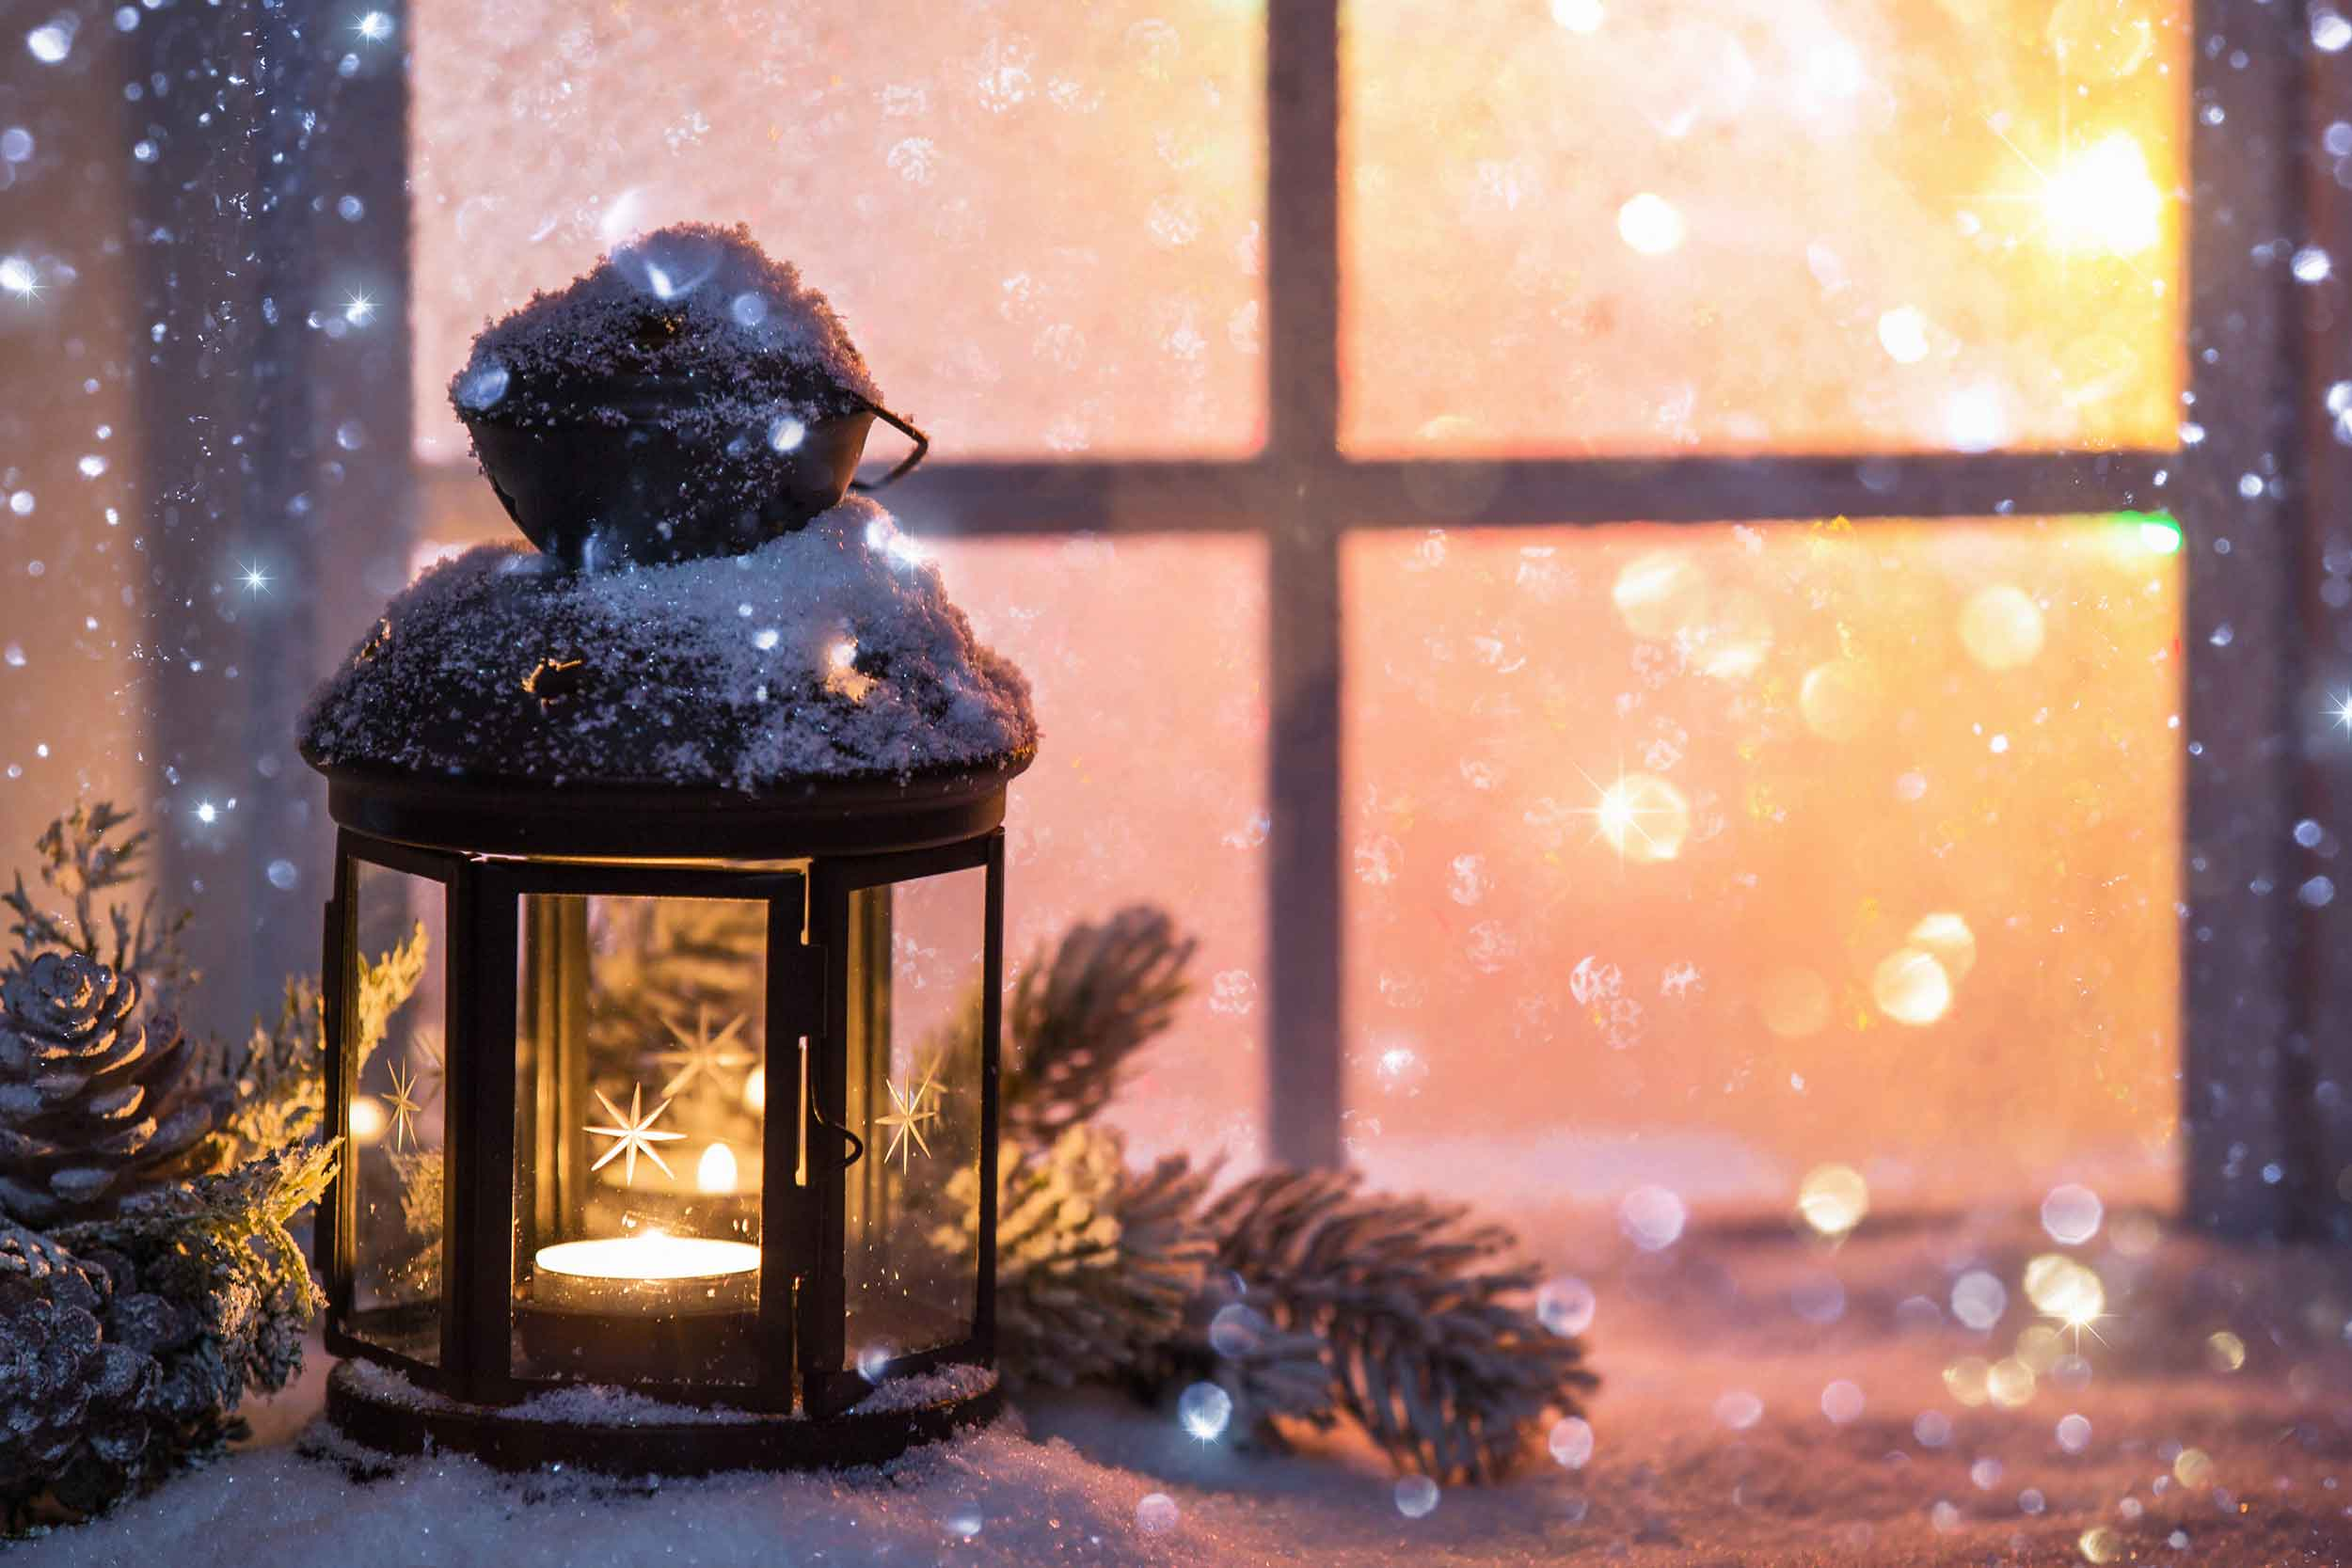 Warm Welcome - It's time to welcome joy to our hearts, friends to our home, and prosperity to our new year!